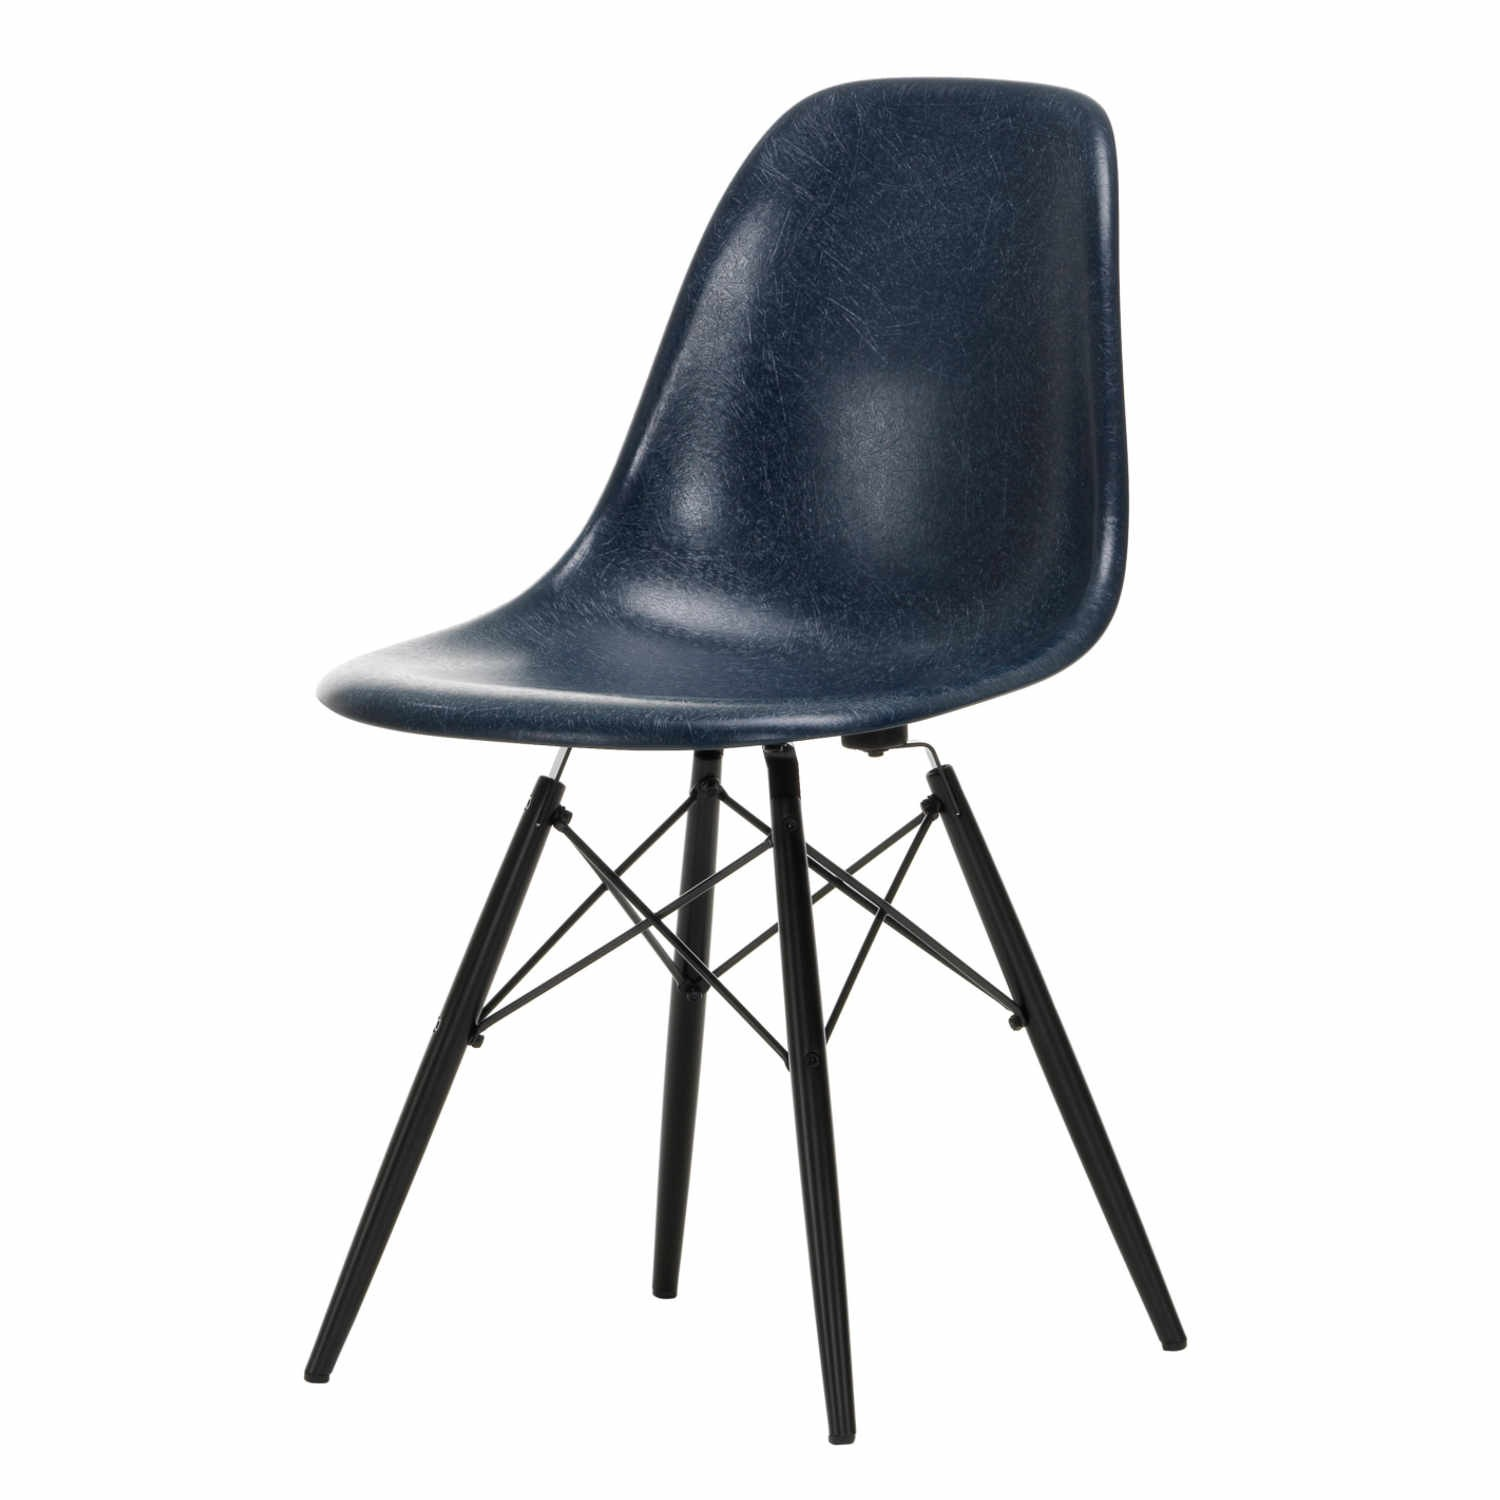 vitra eames fiberglass side chair dsw stuhl bruno. Black Bedroom Furniture Sets. Home Design Ideas